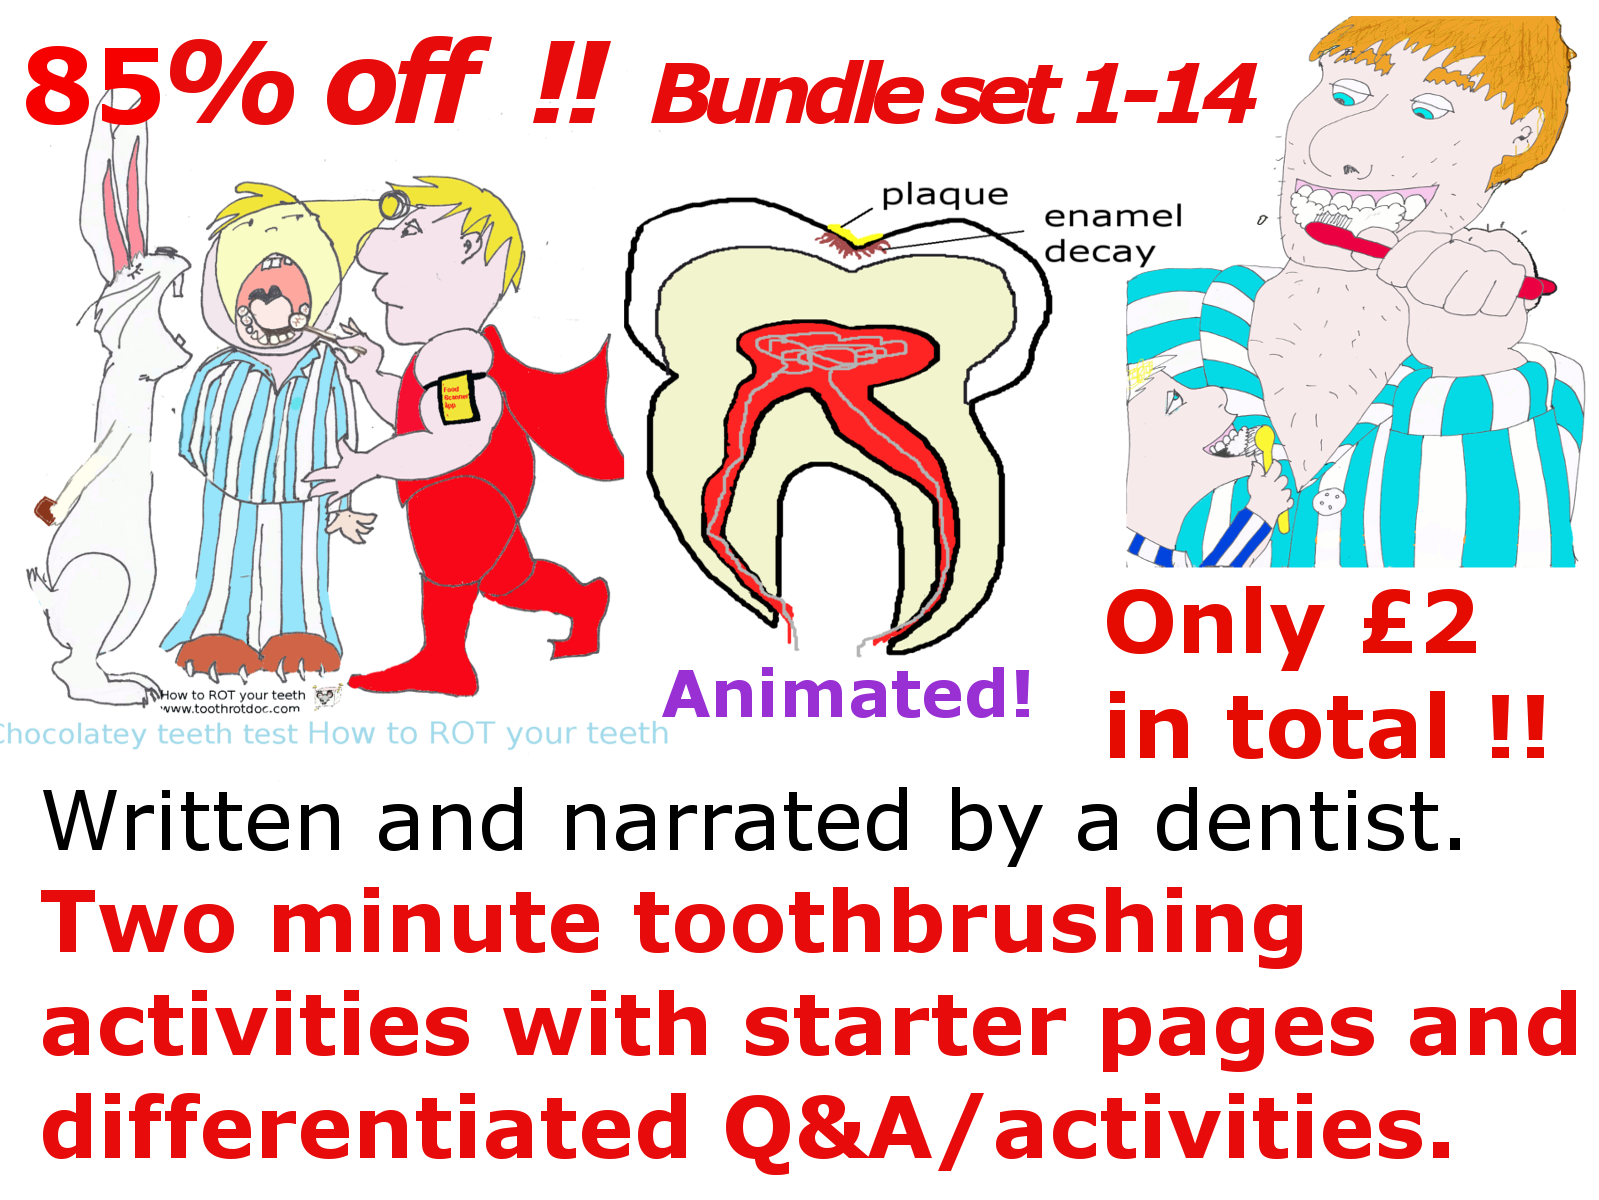 How to rot your teeth! Complete set of 14 two minute toothbrushing educational animated activity